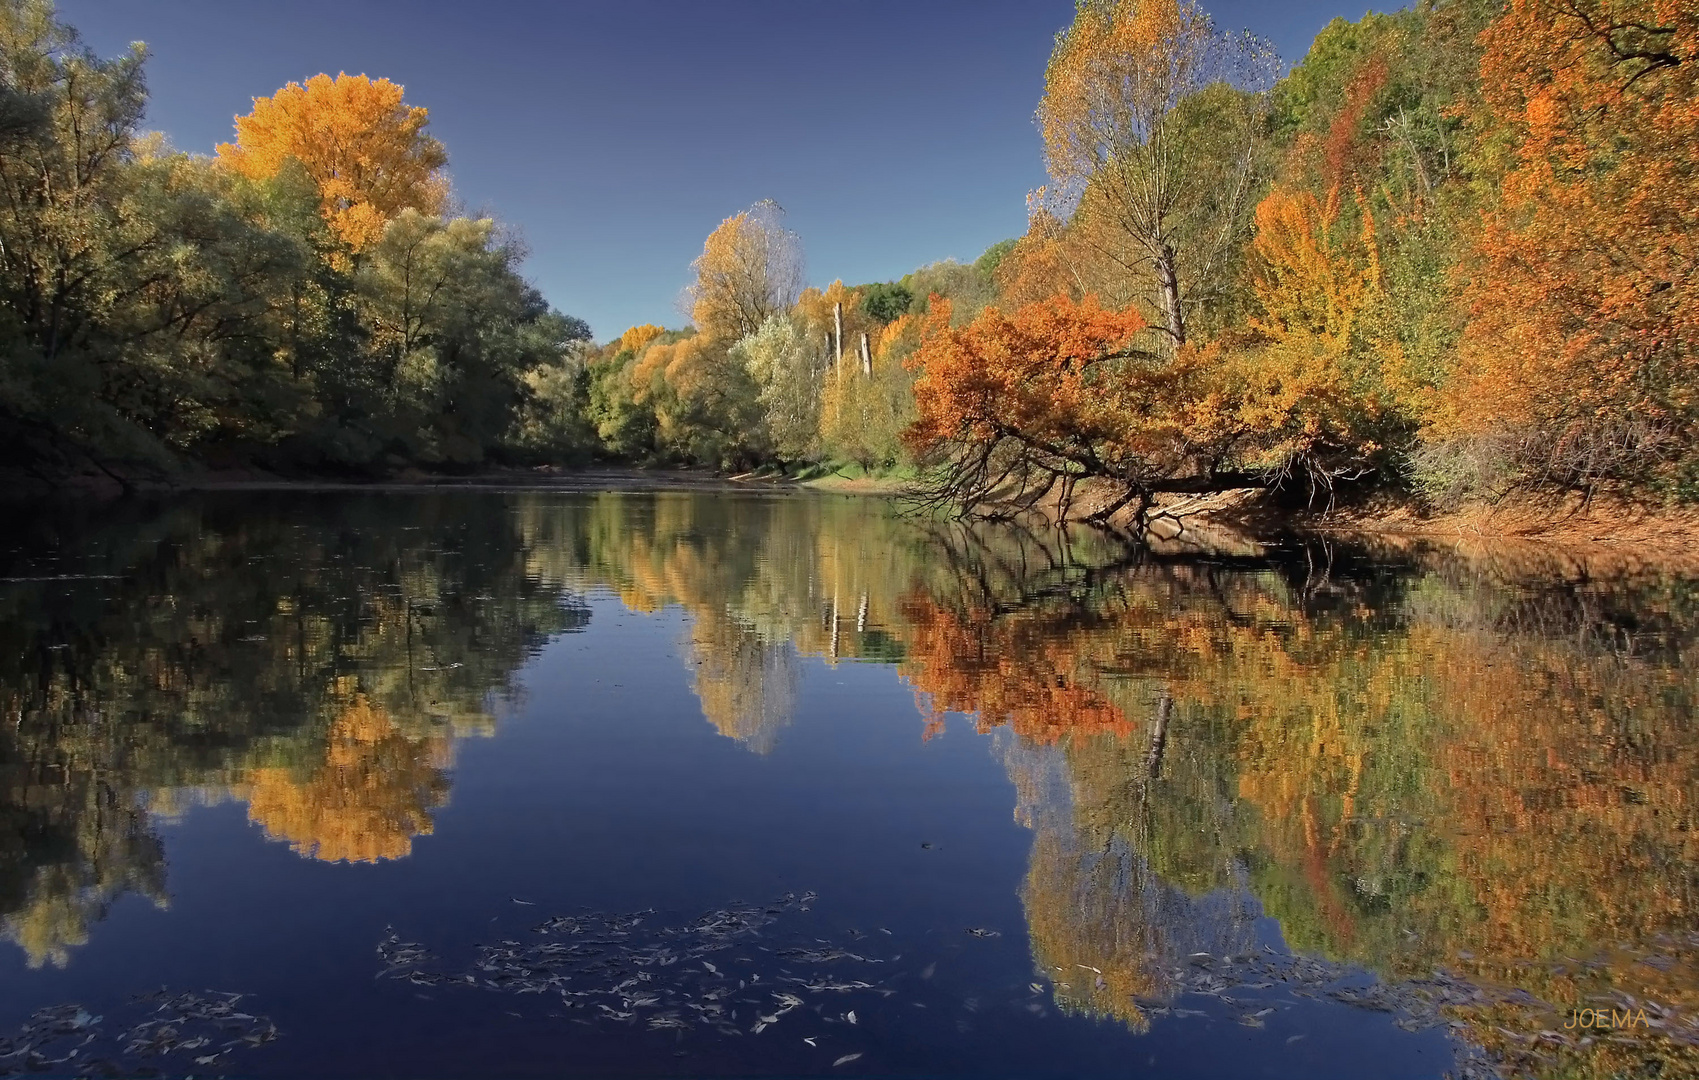 Herbst am See (4)